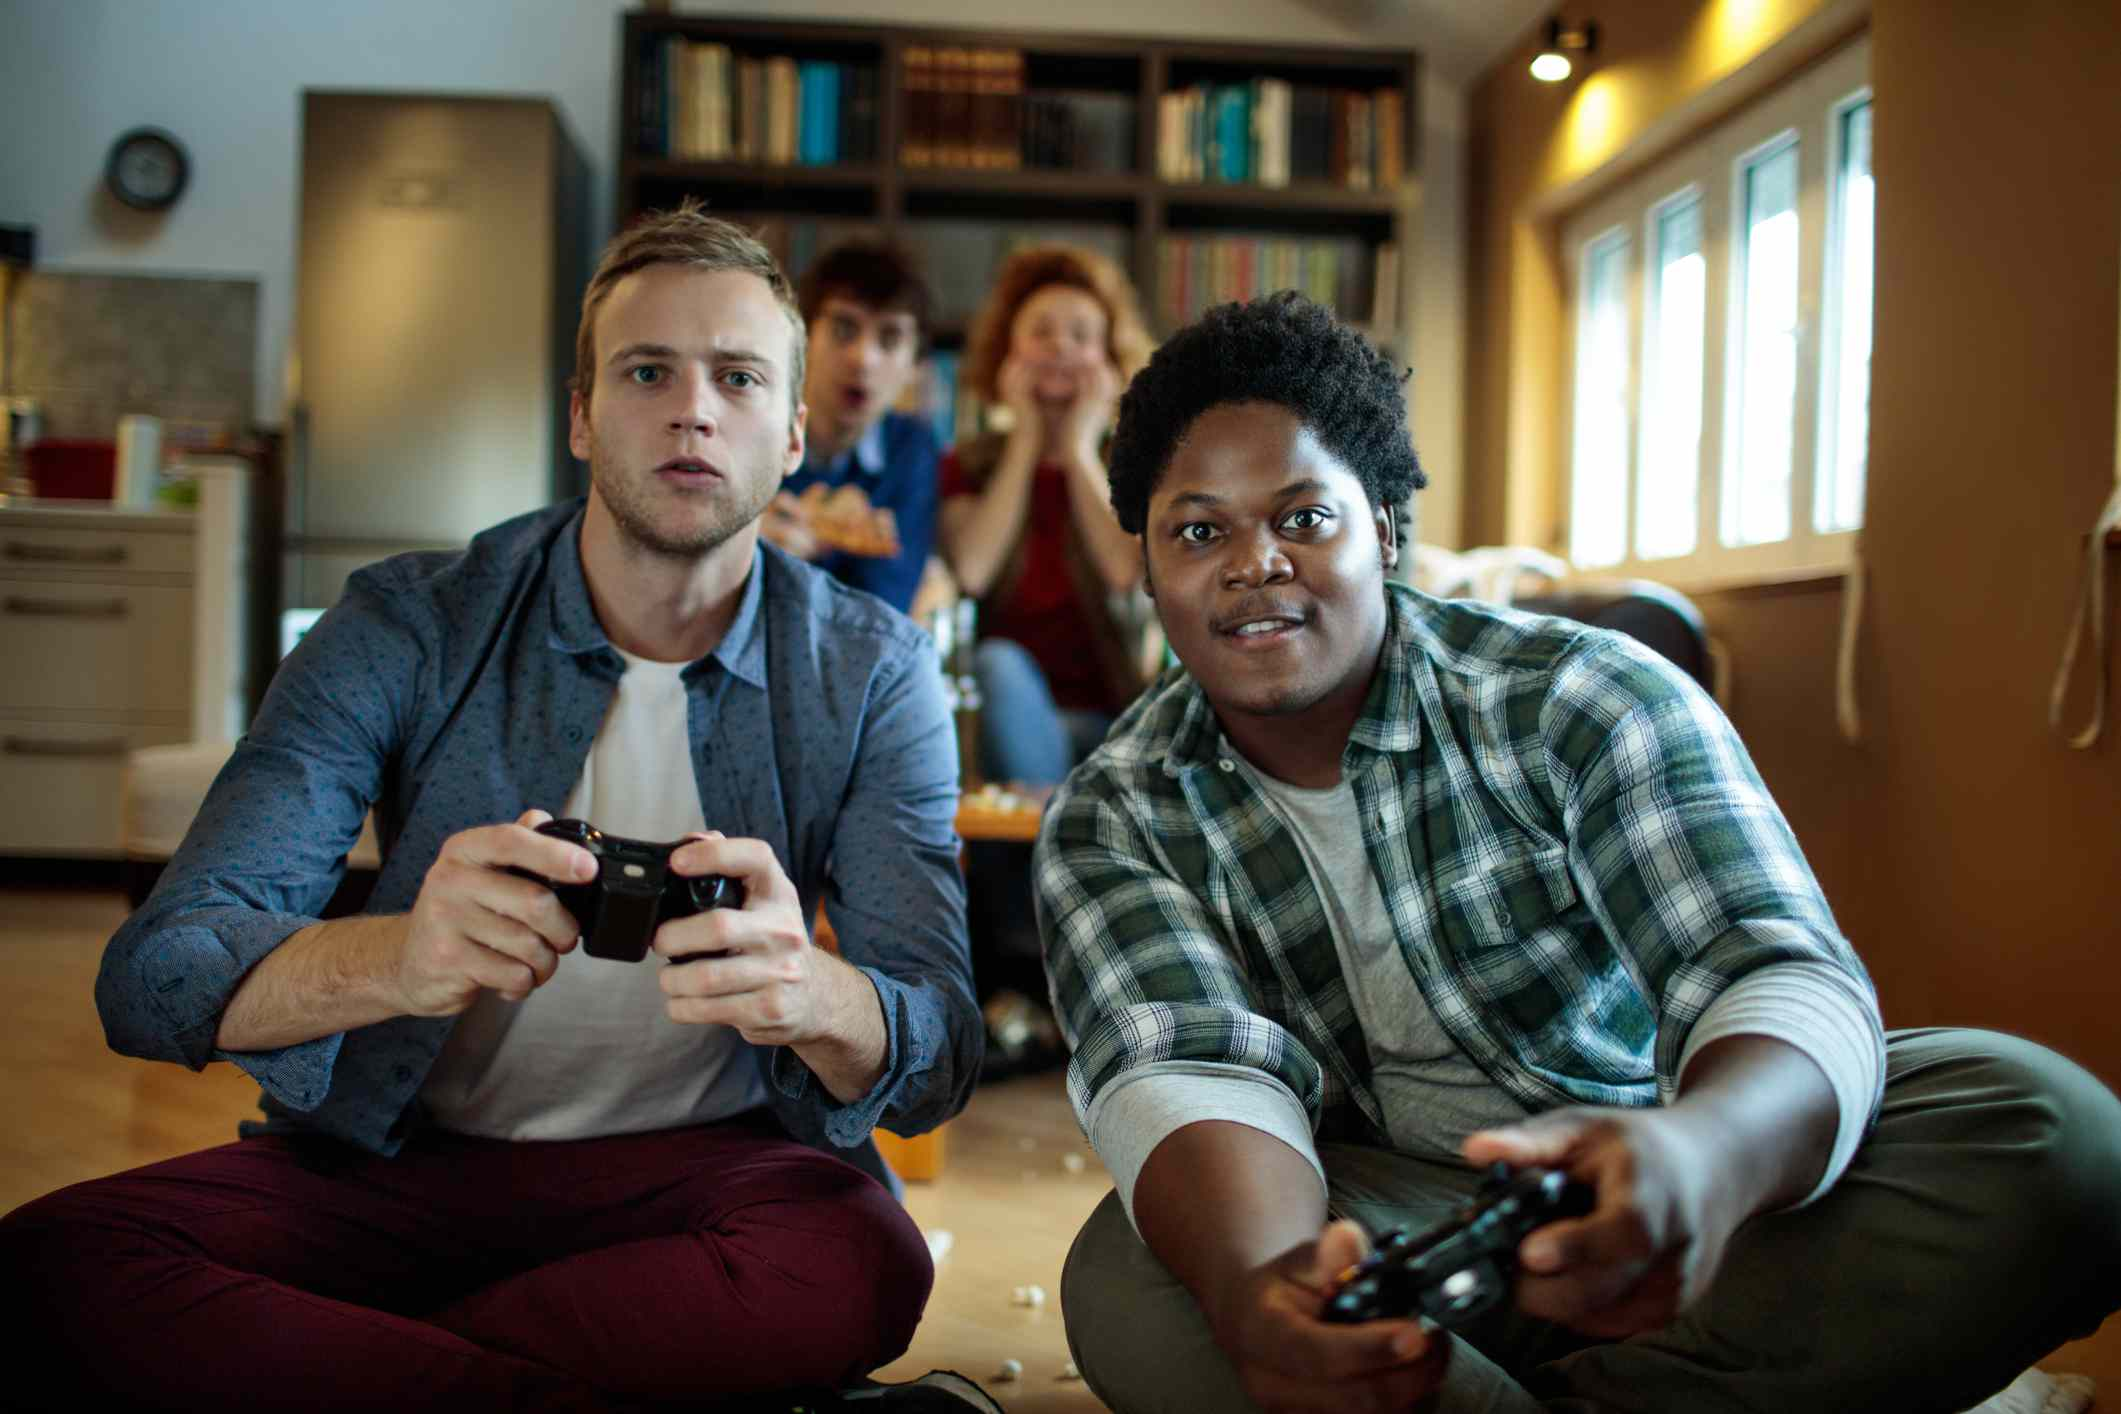 Students playing video game